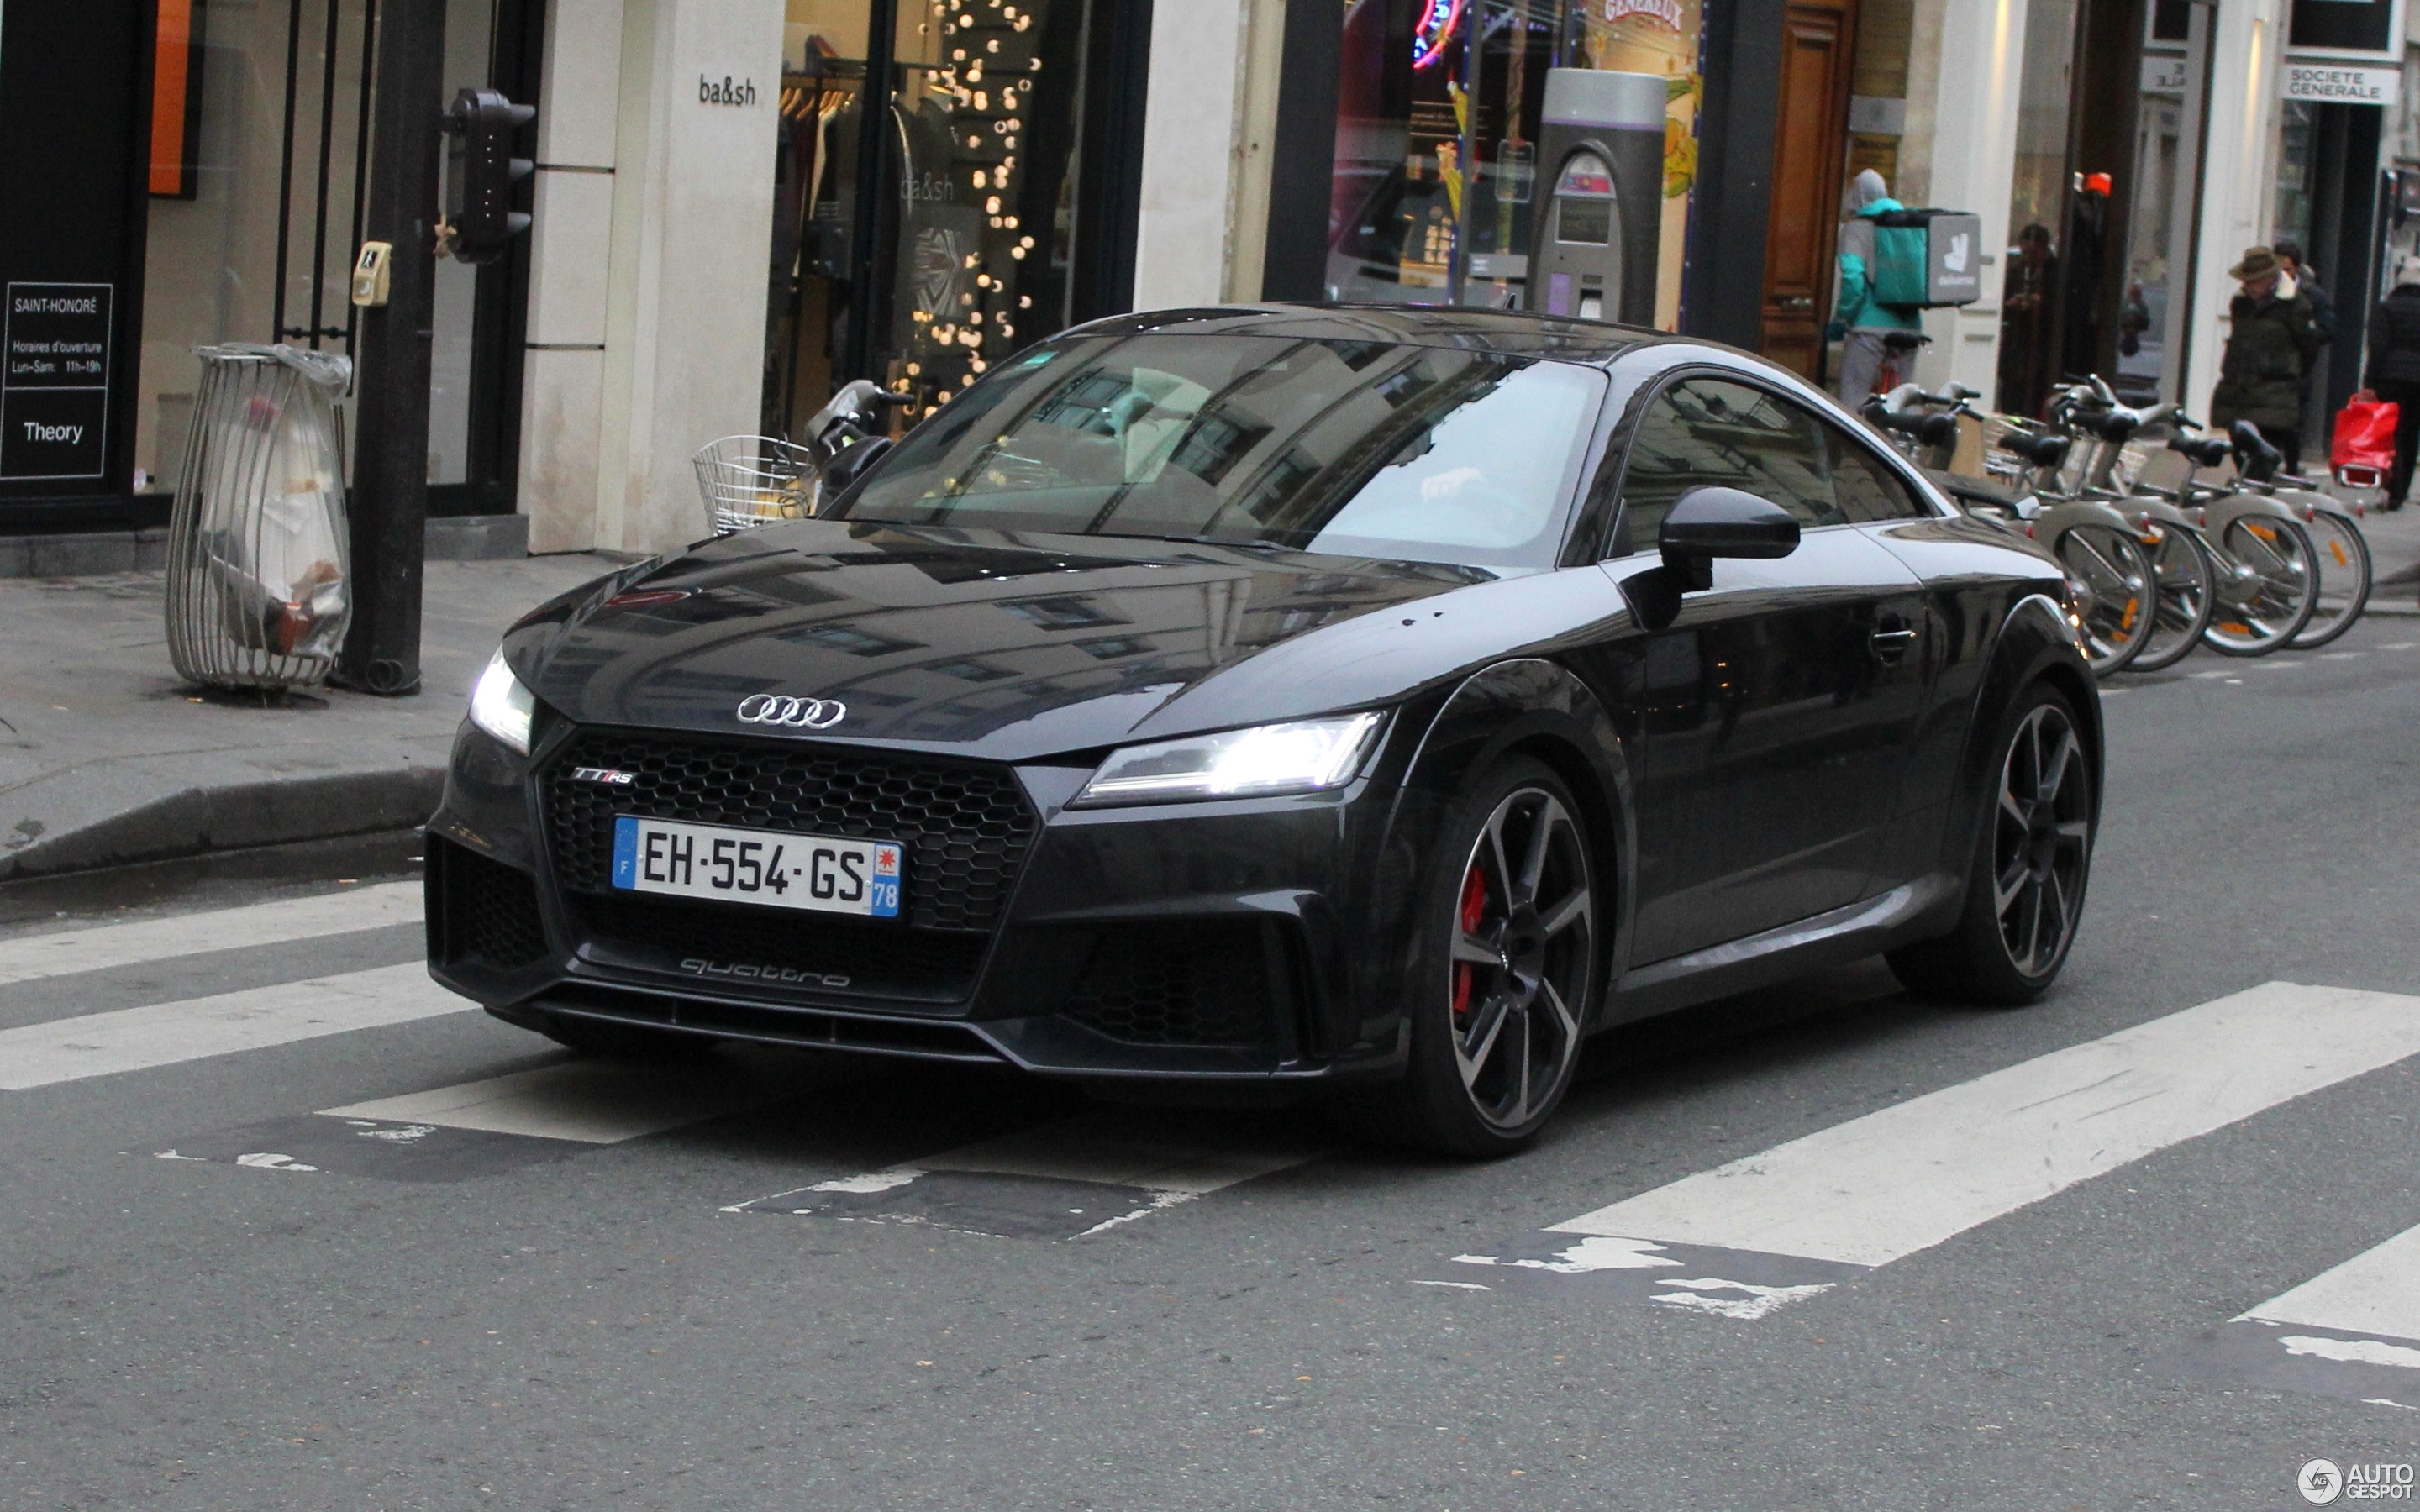 Tt 2017 Audi Tt Rs 2017 4 January 2017 Autogespot